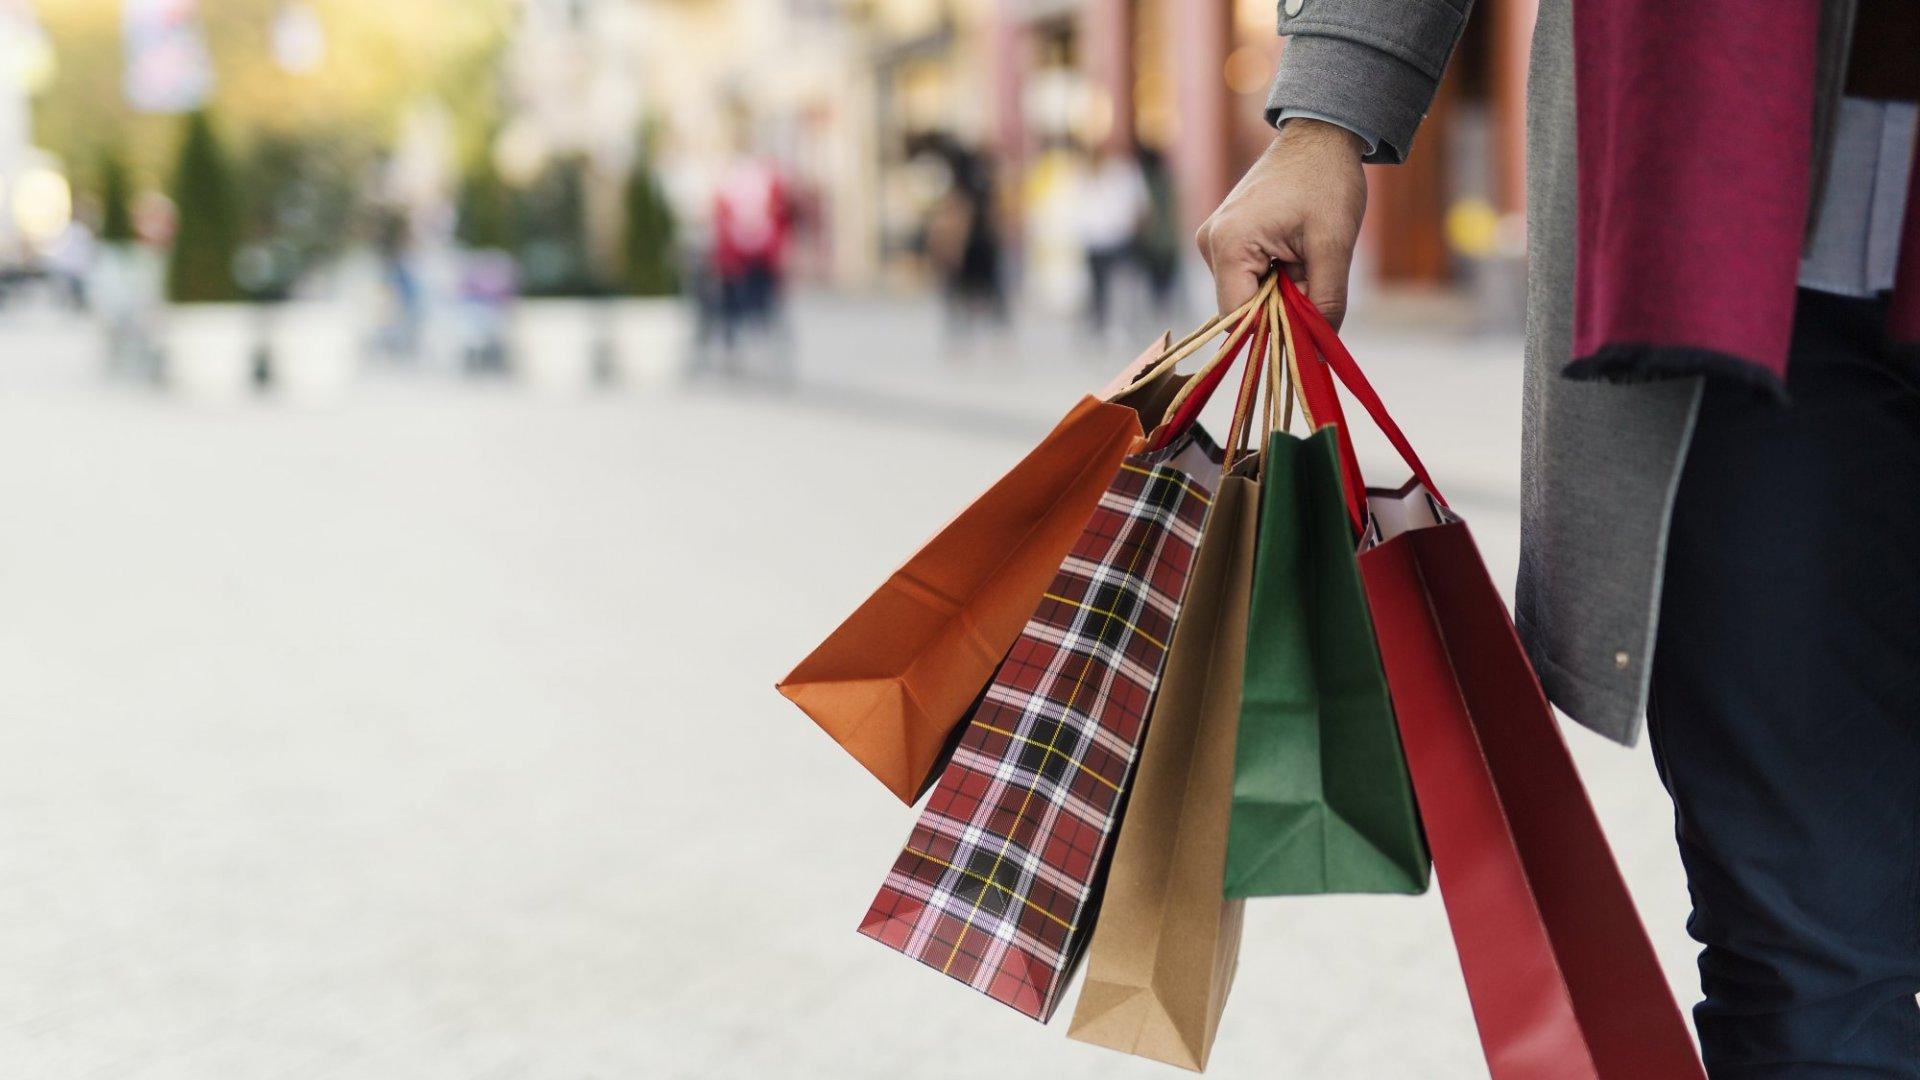 Valentine's Day spend likely to decline, says FNB